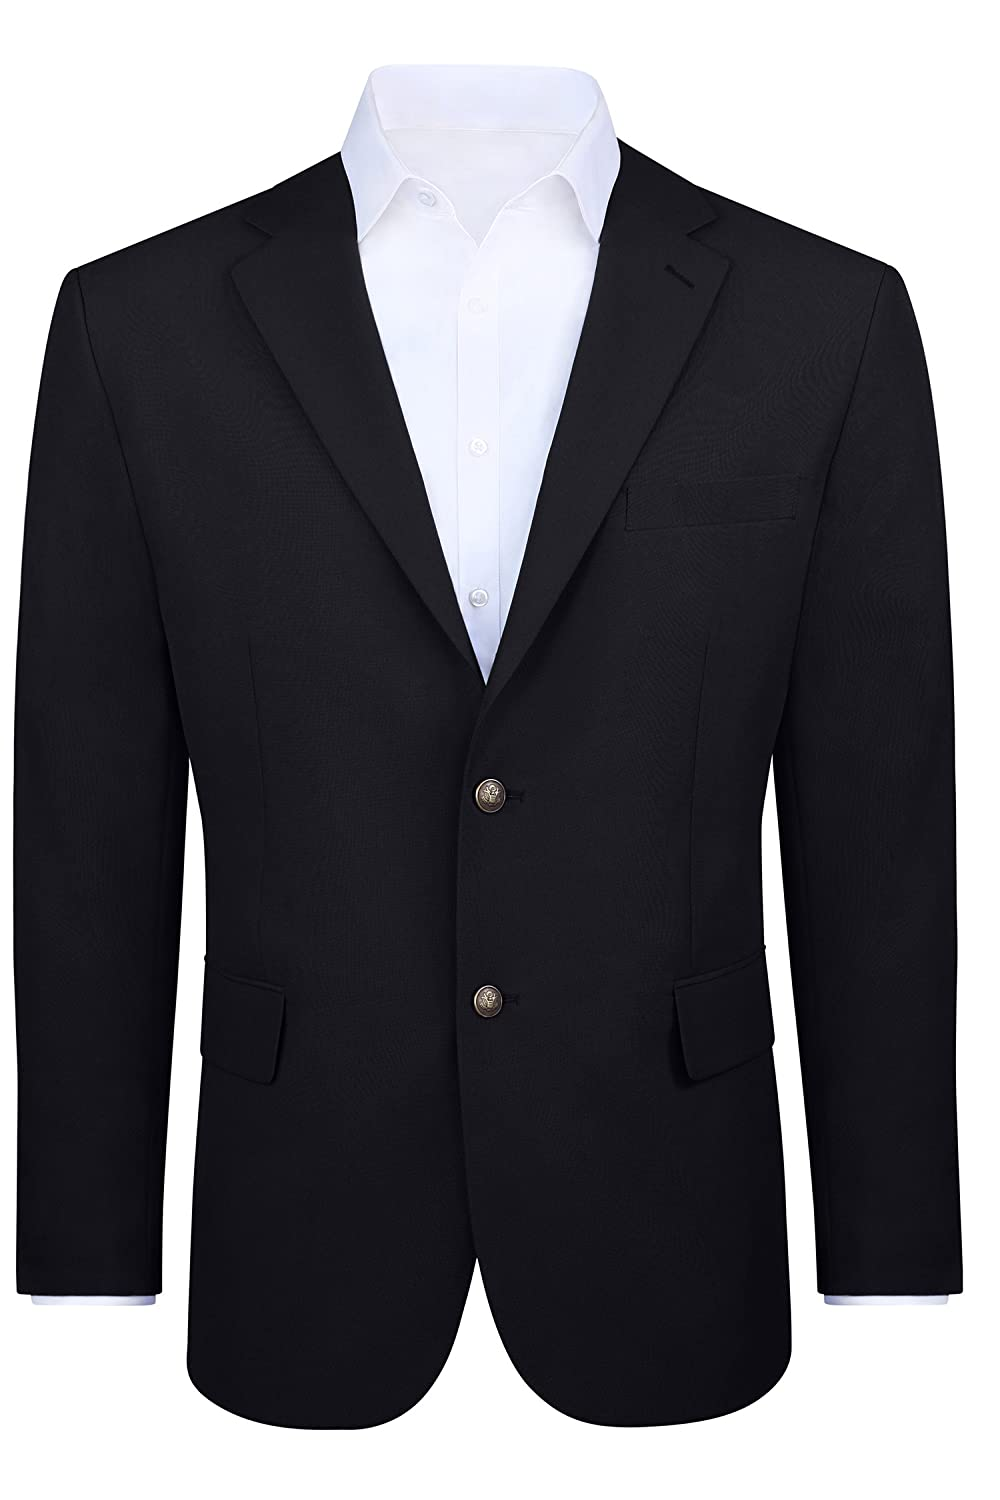 05072f2c Styled with a notch lapel, two regular side pockets, antique gold-colored  buttons on the front and the sleeves, and double vented back, this men\'s  blazer ...